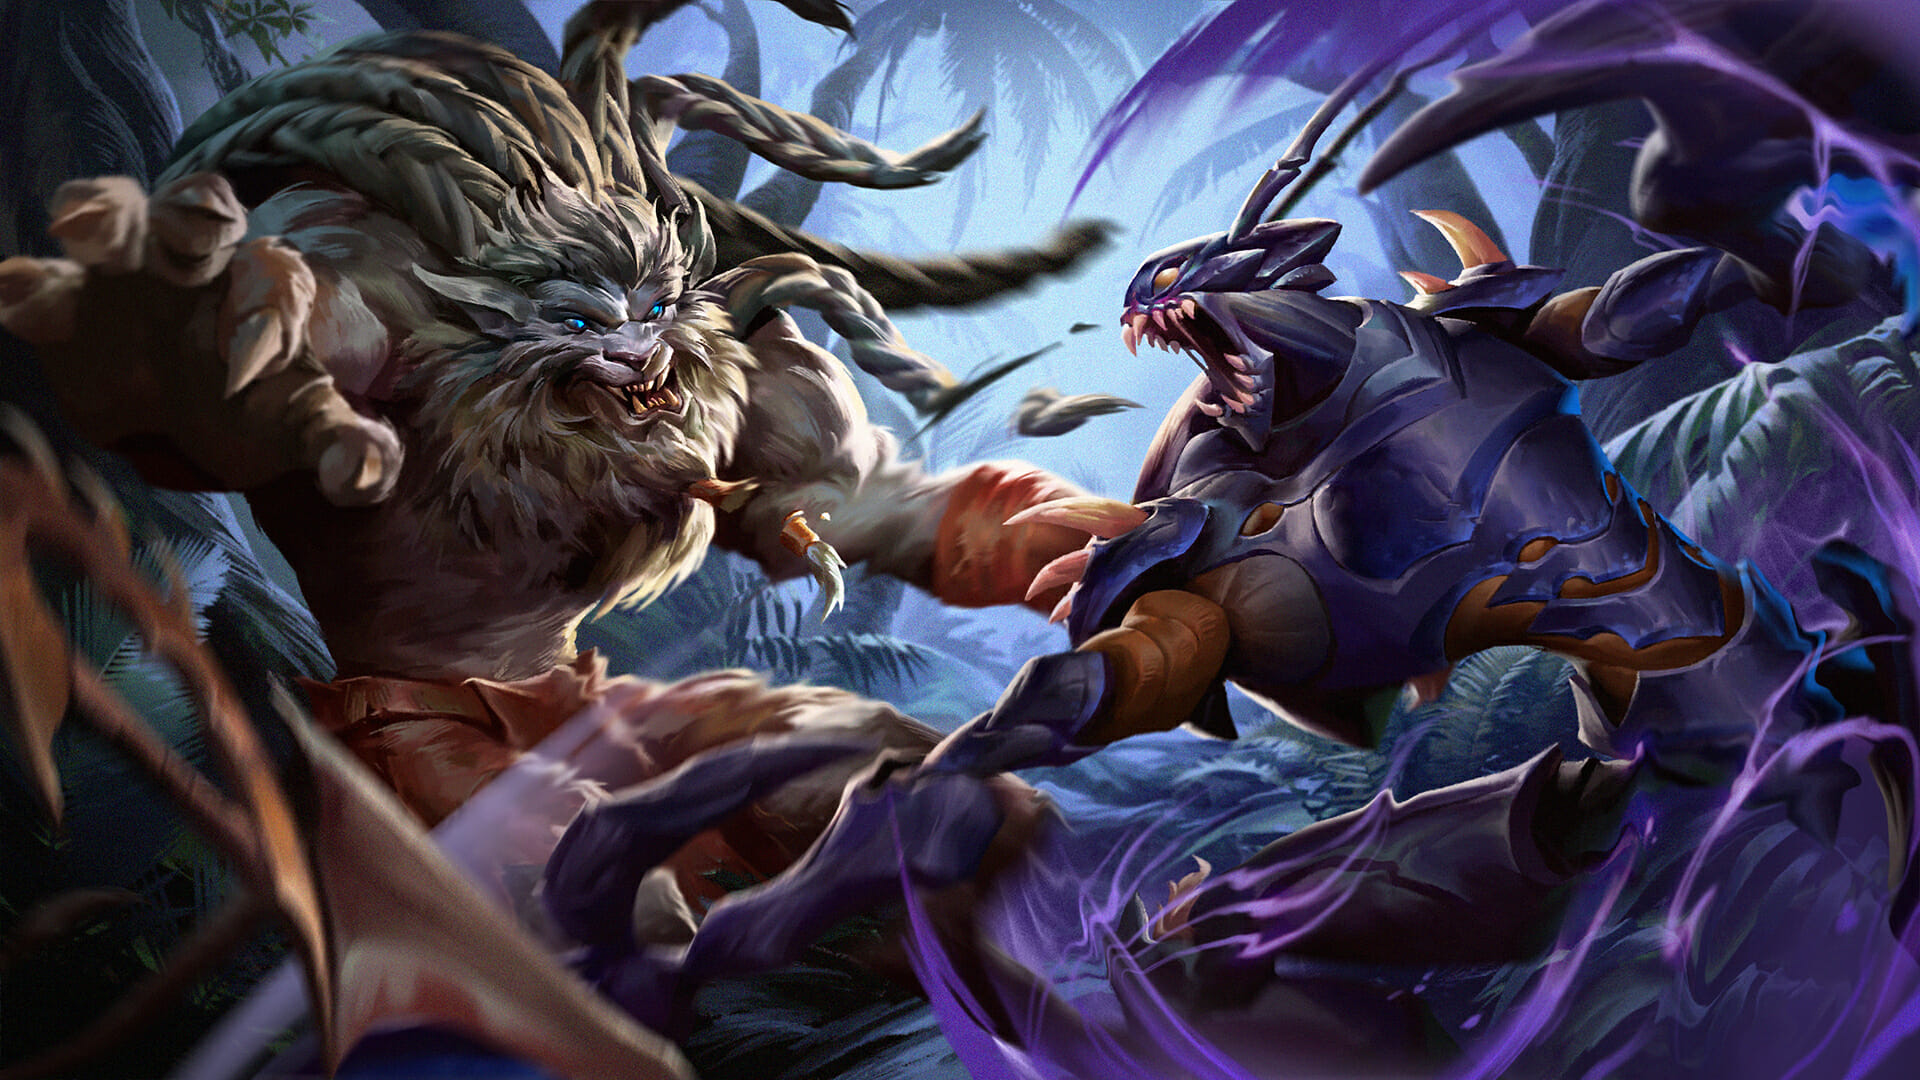 Khazix attacking rengar in the jungle and catching him by surprise